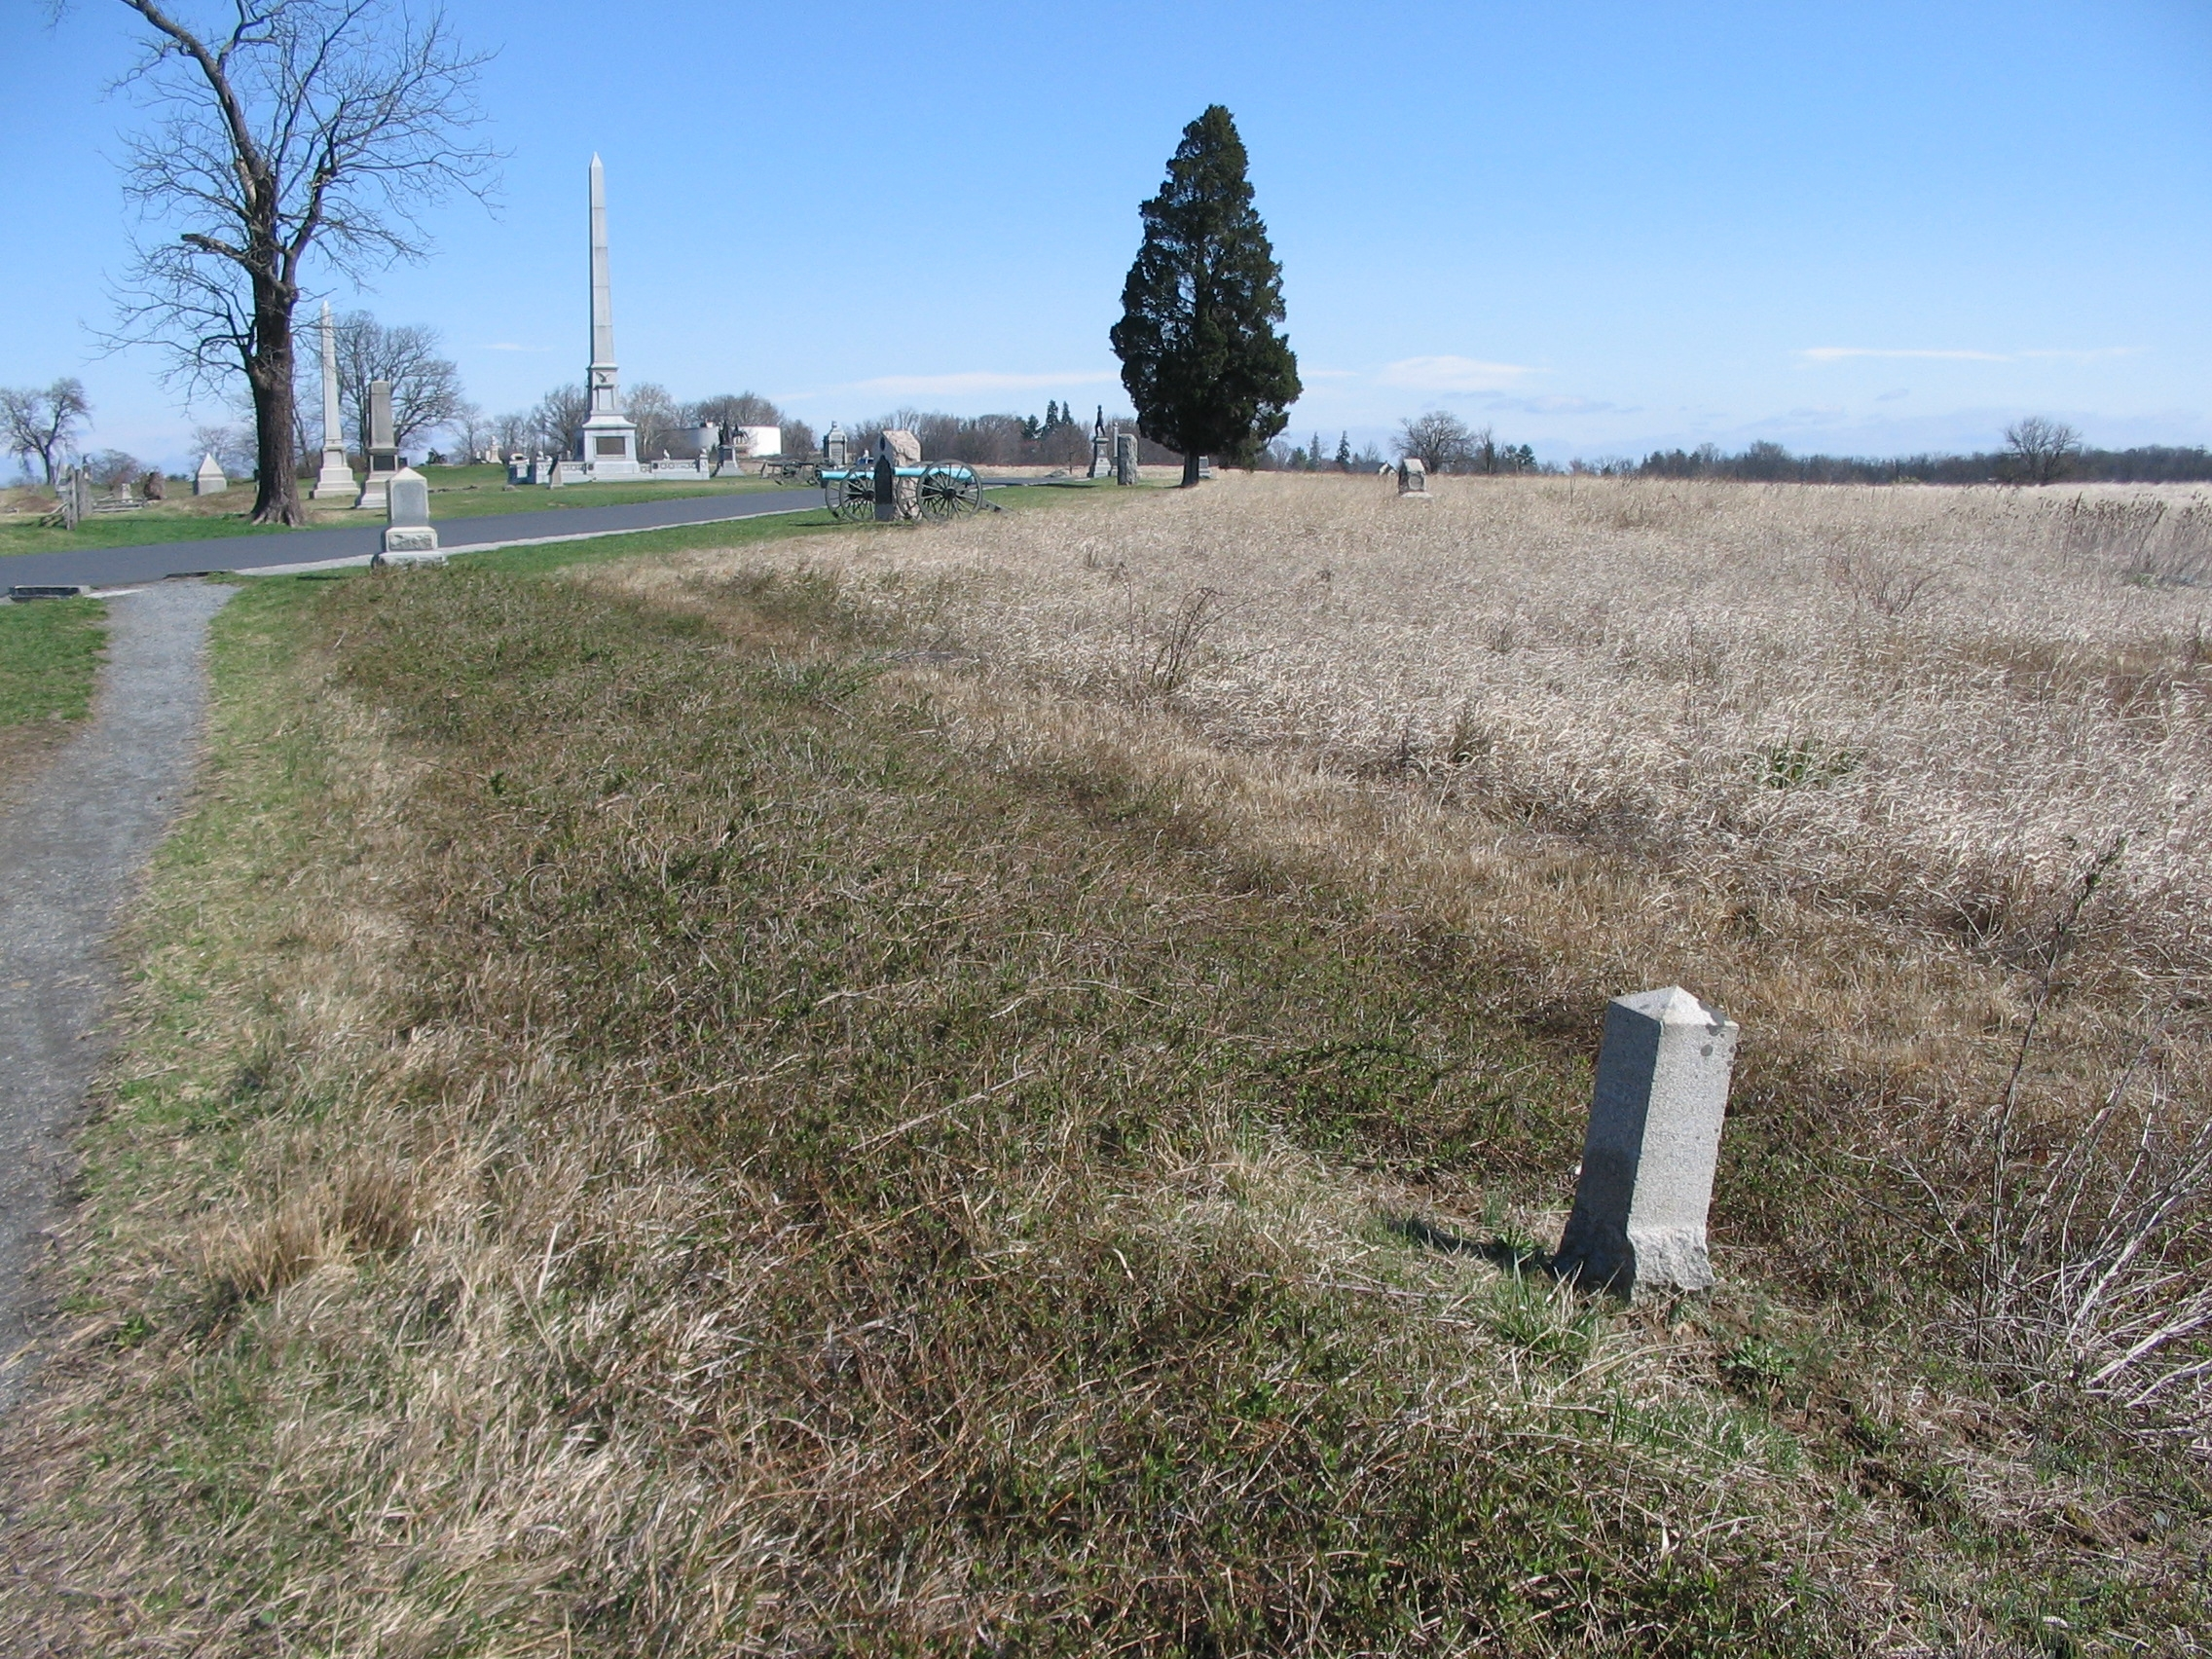 143rd Pennsylvania Infantry Position